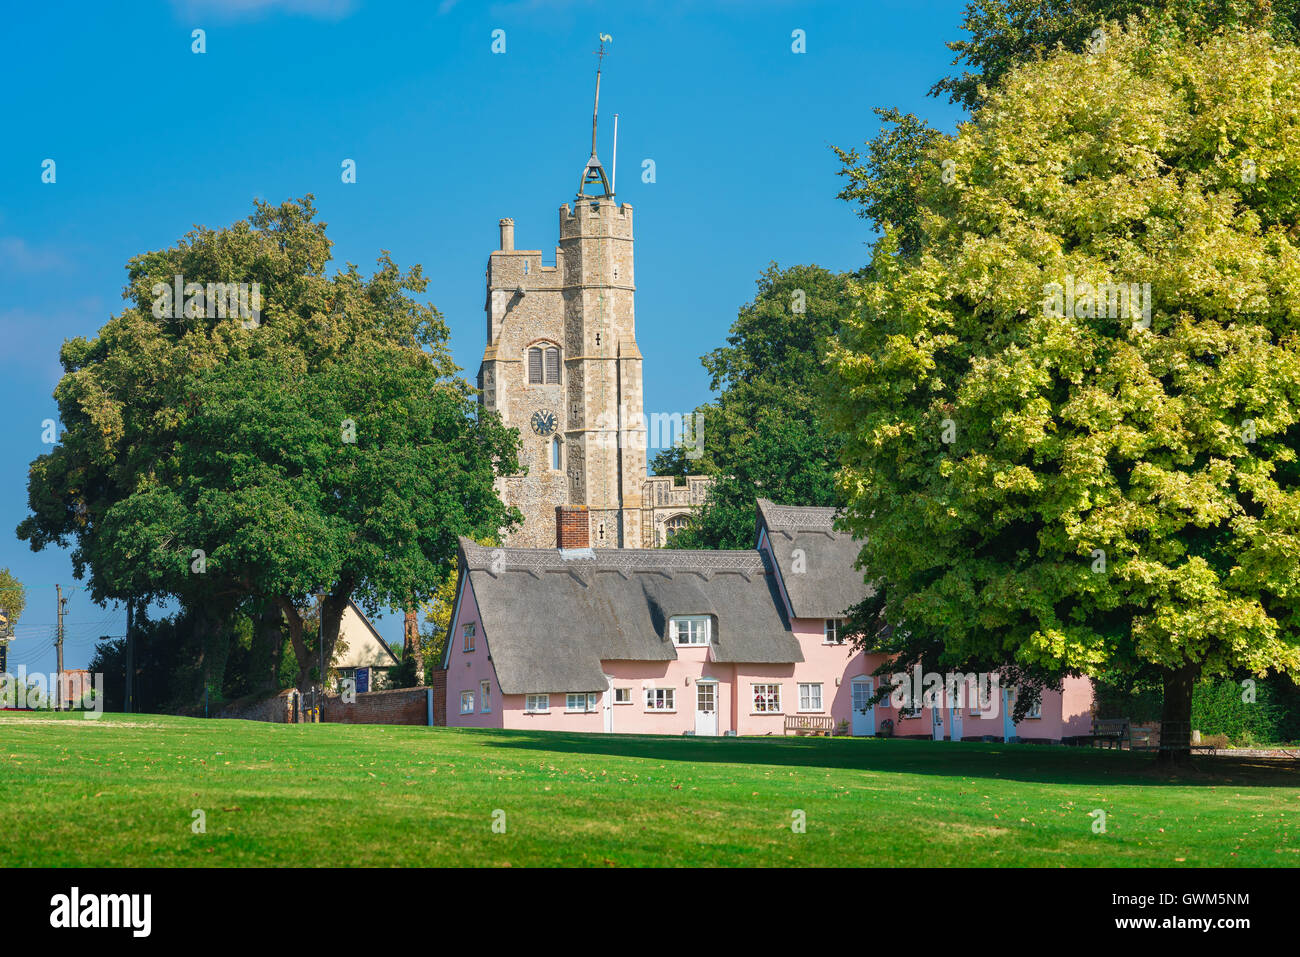 England traditional village, the village green in Cavendish Suffolk, England, UK - Stock Image